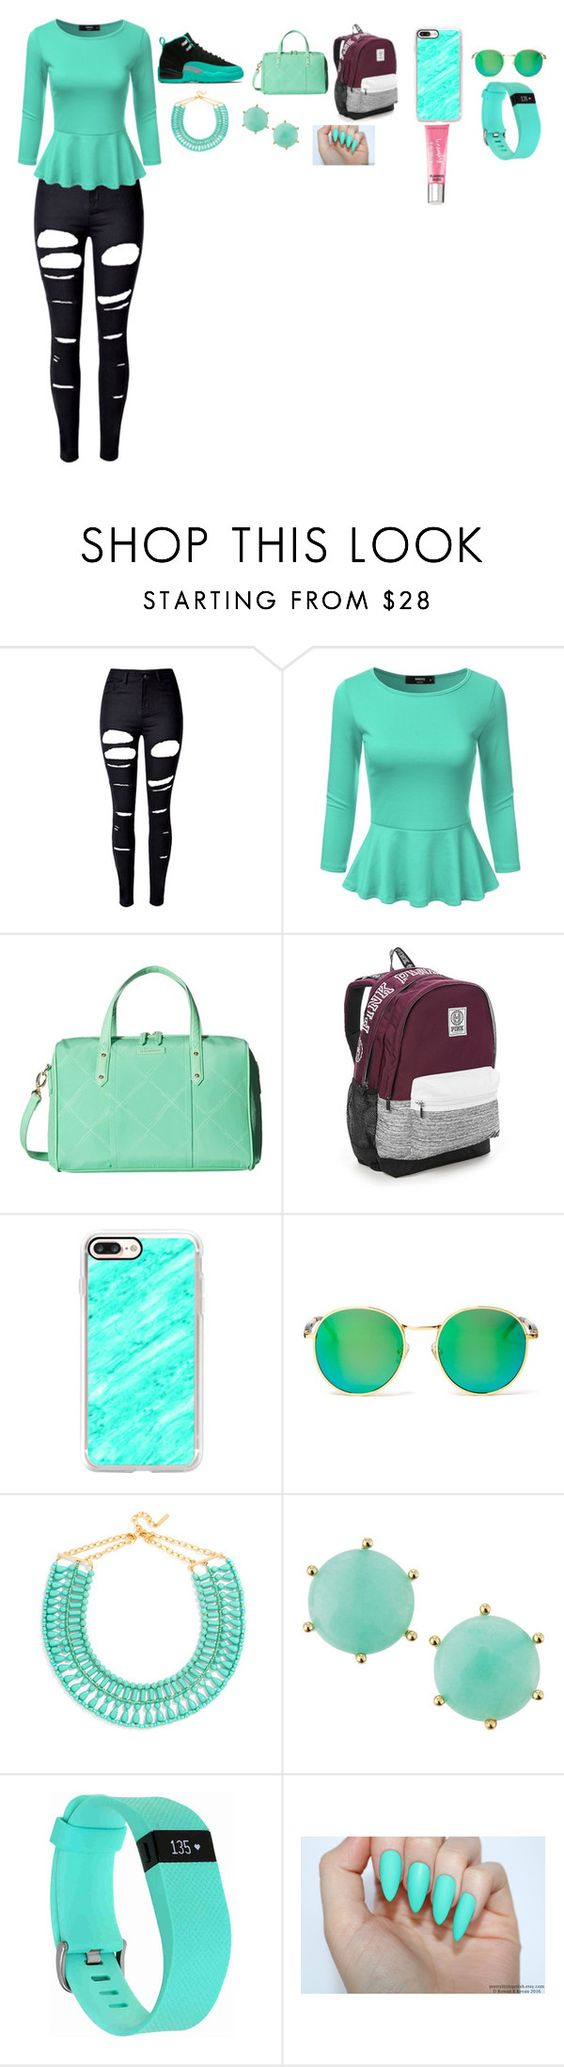 """""""Untitled #147"""" by keshalove-1 ❤ liked on Polyvore featuring WithChic, Vera Bradley, Victoria's Secret, Casetify, Wildfox, BaubleBar, Panacea, Fitbit and Beauty Rush"""